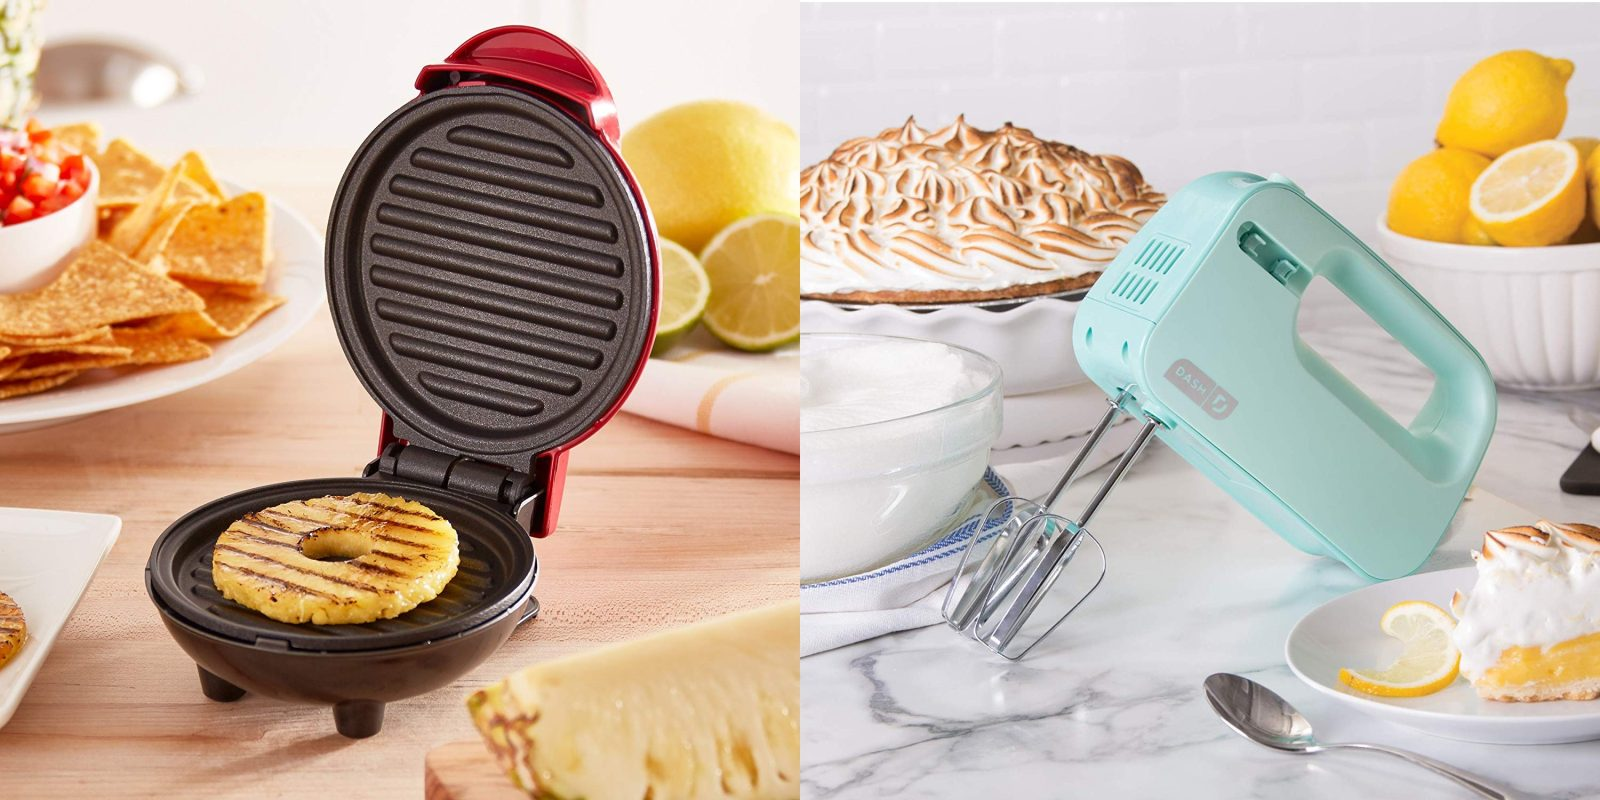 Outfit your kitchen with these Dash mini appliances from $8 Prime shipped